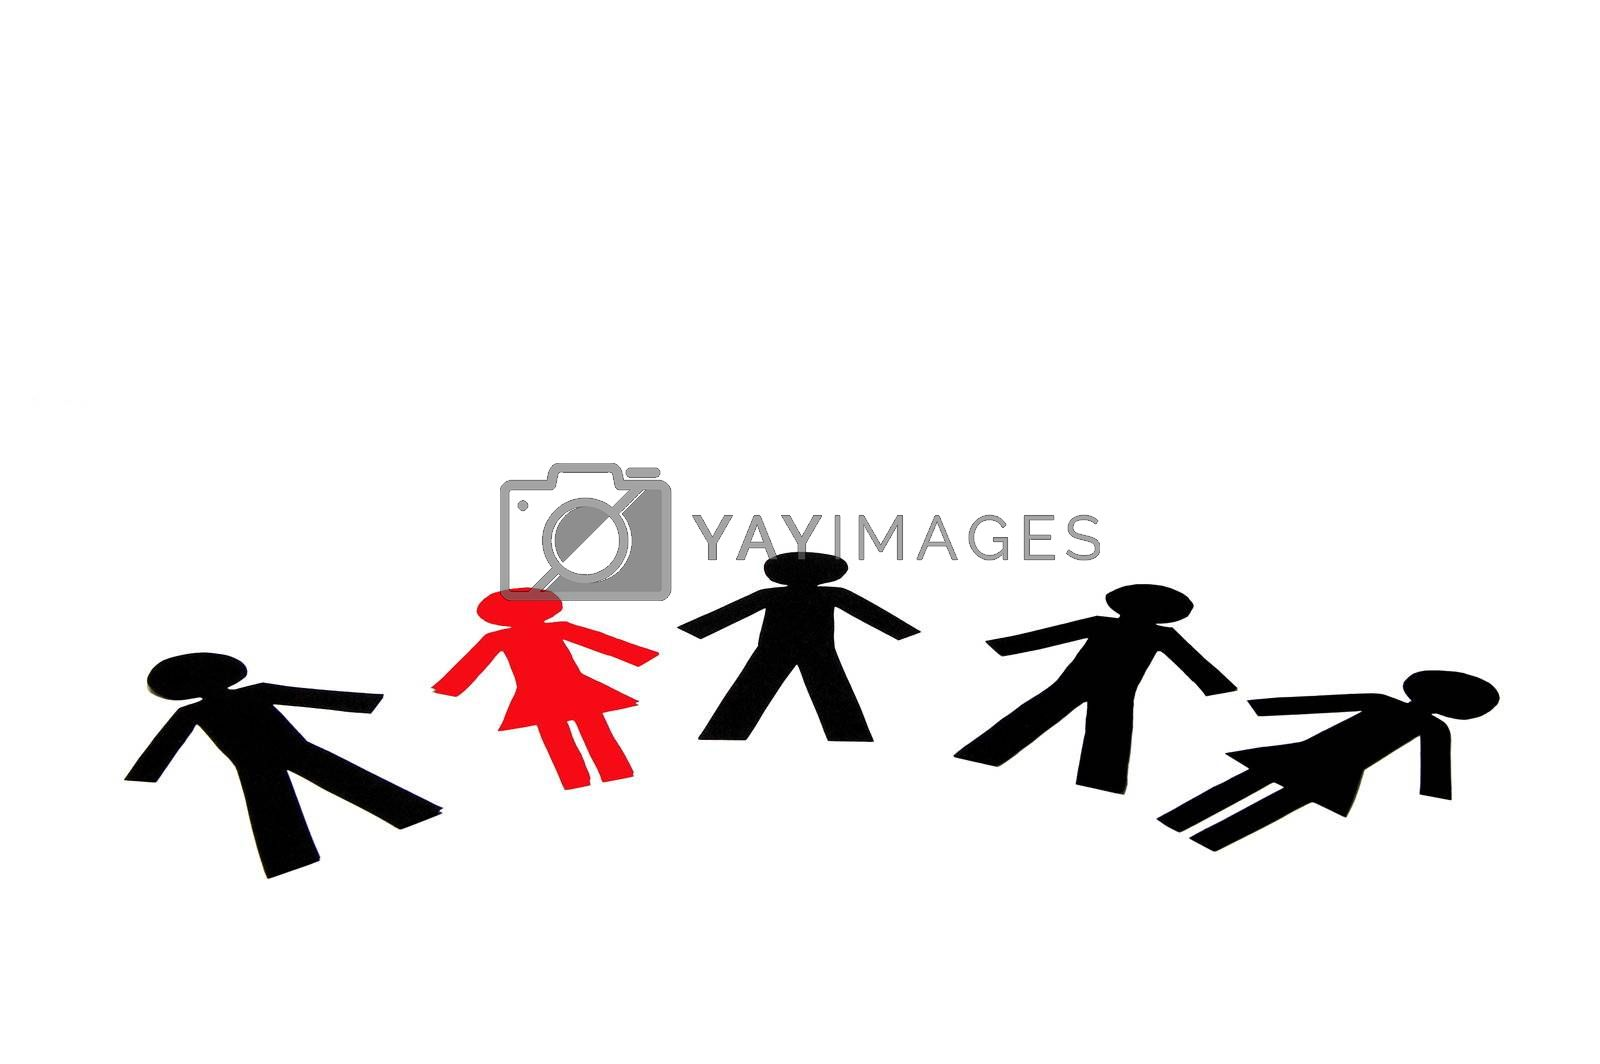 Some People made of Paper isolated on white background.